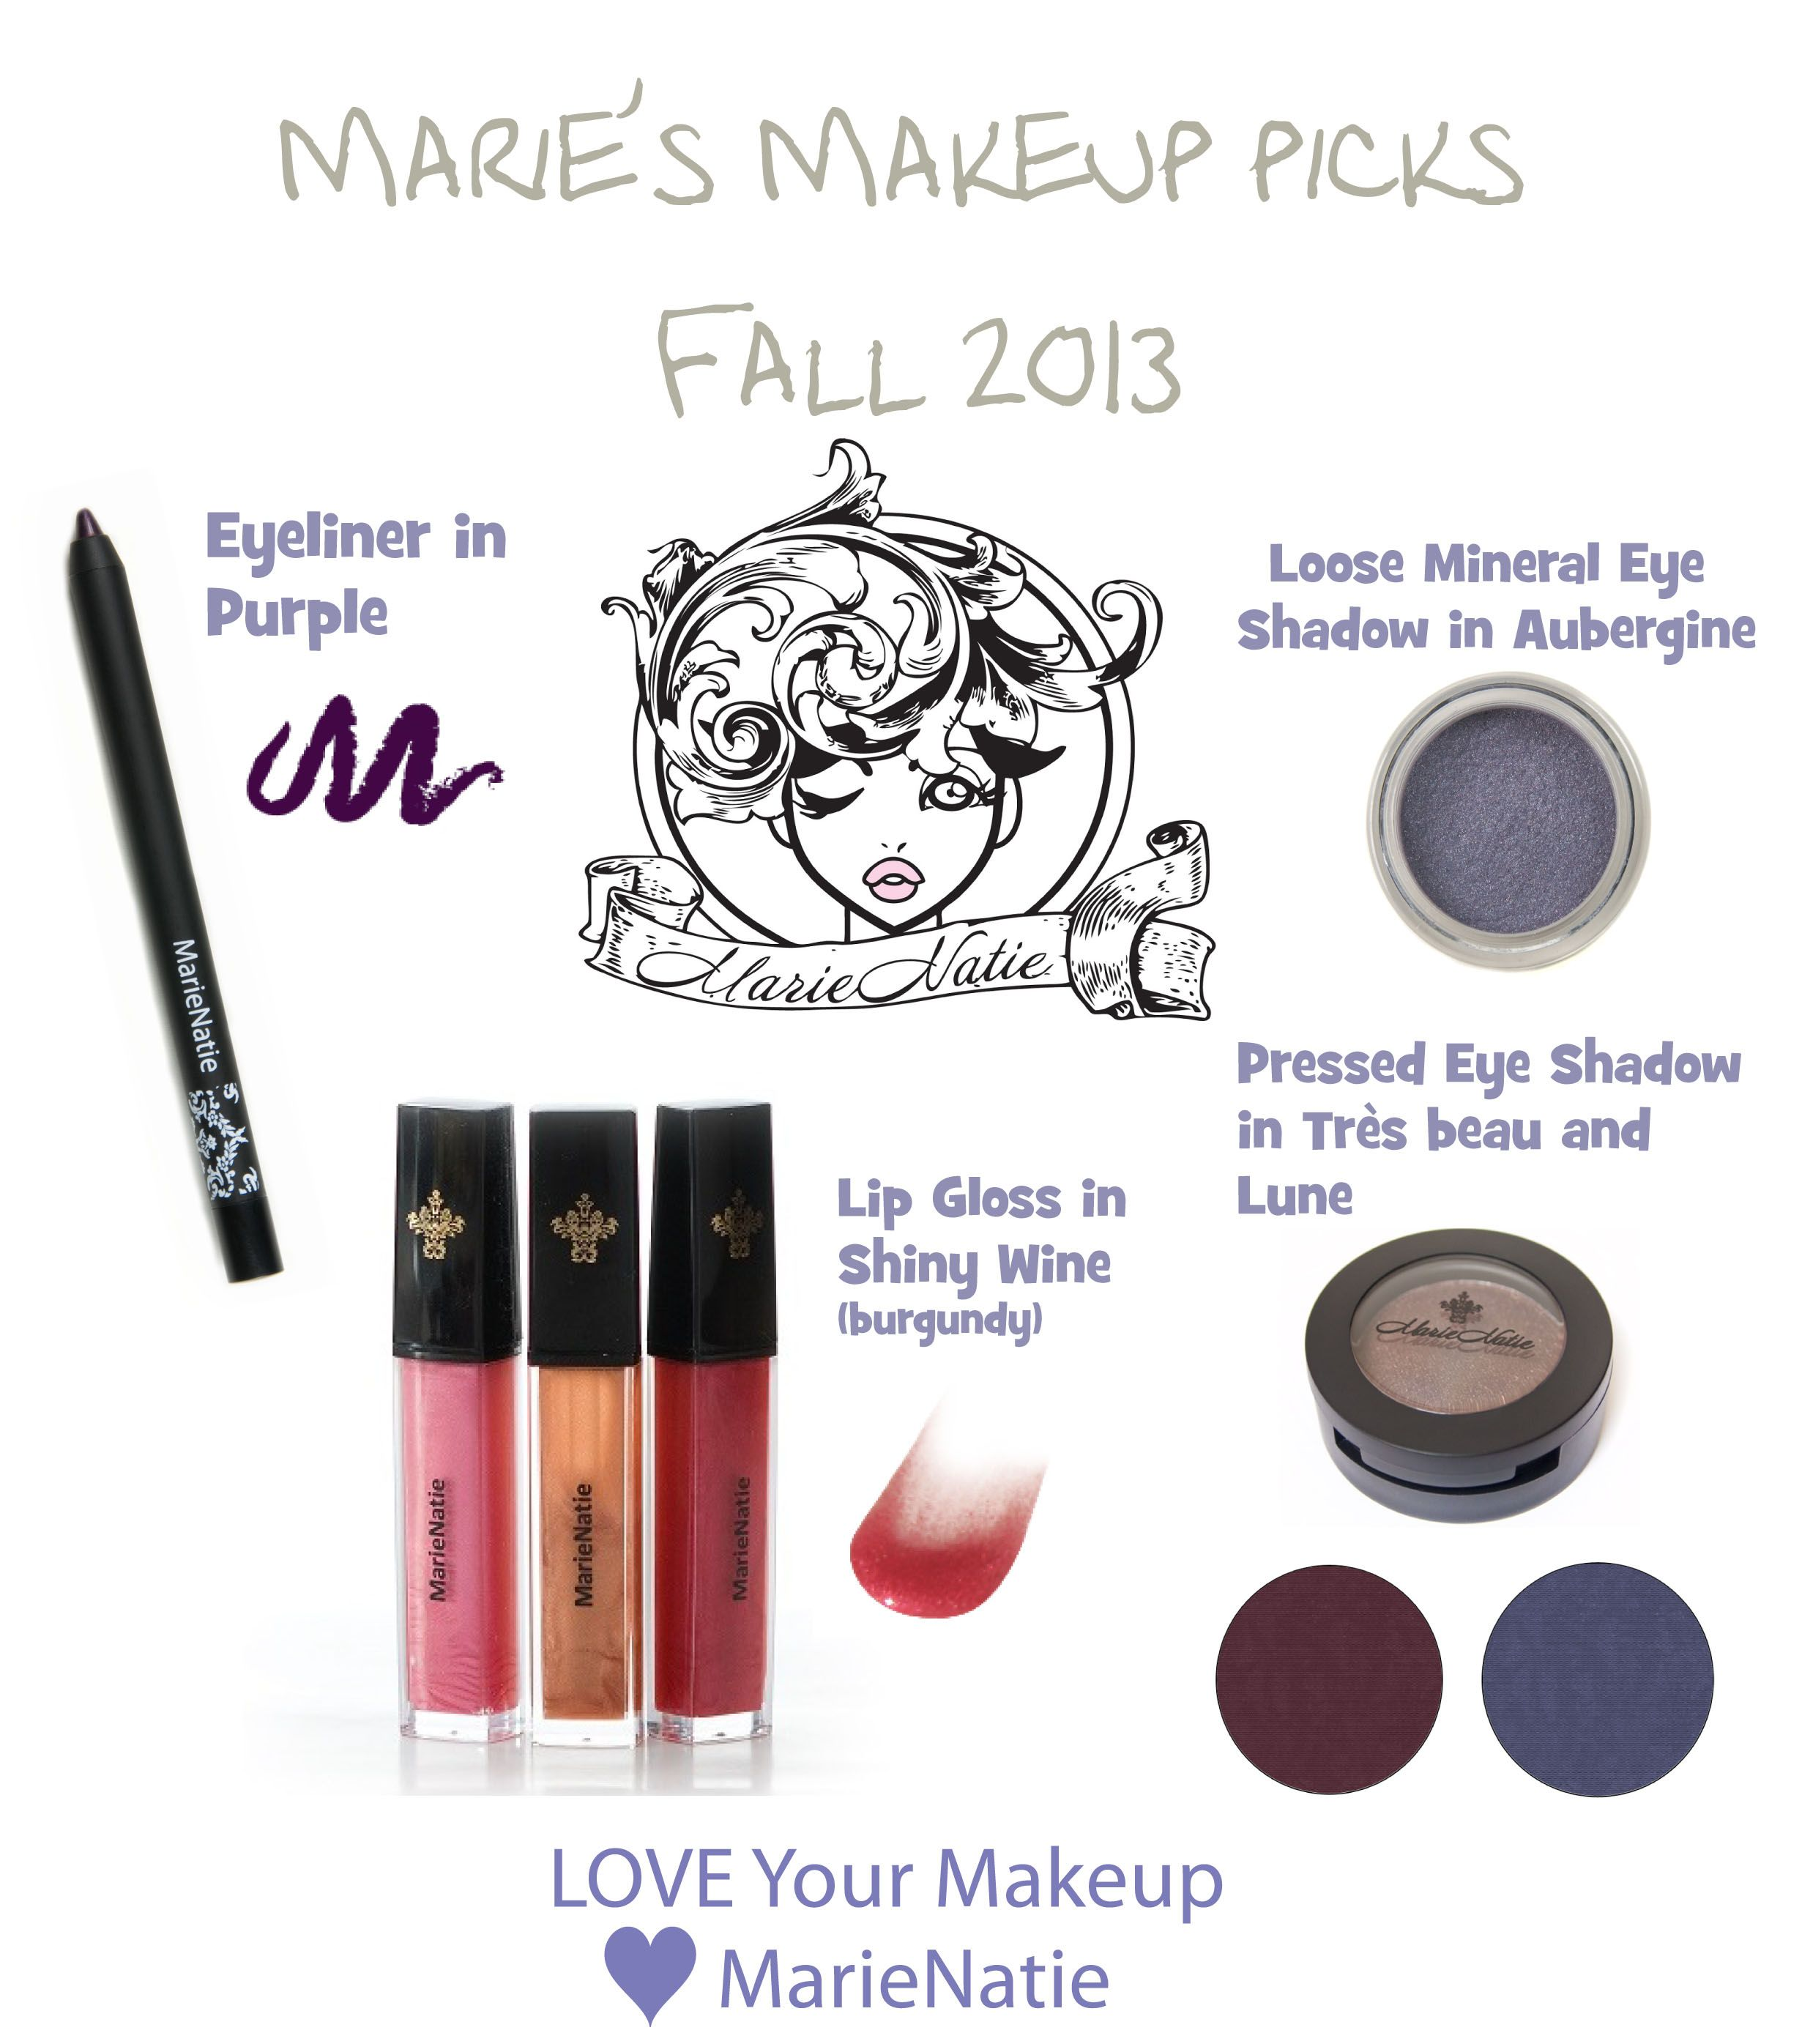 MarieNatie Makeup Picks for Fall 2013 #makeup #trends #fall2013 #nontoxic #cosmetics